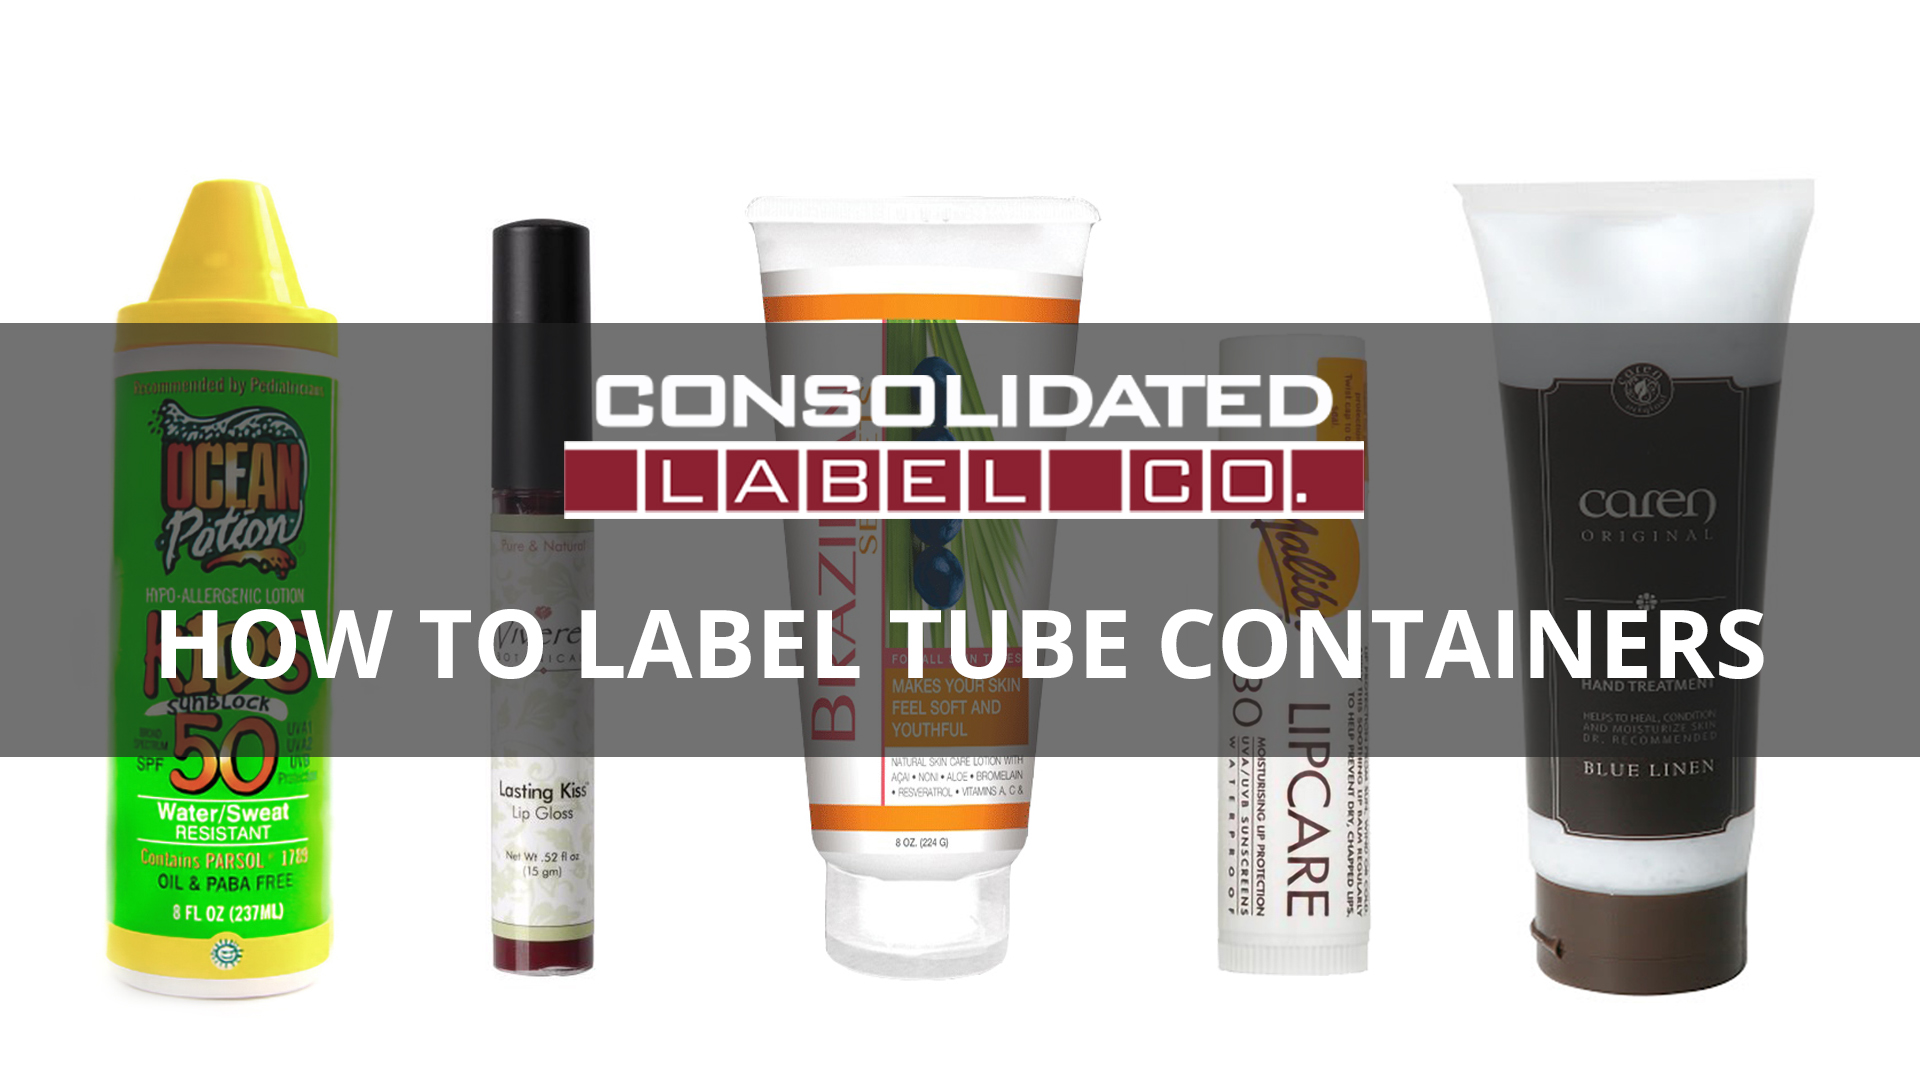 How to label tube containers video